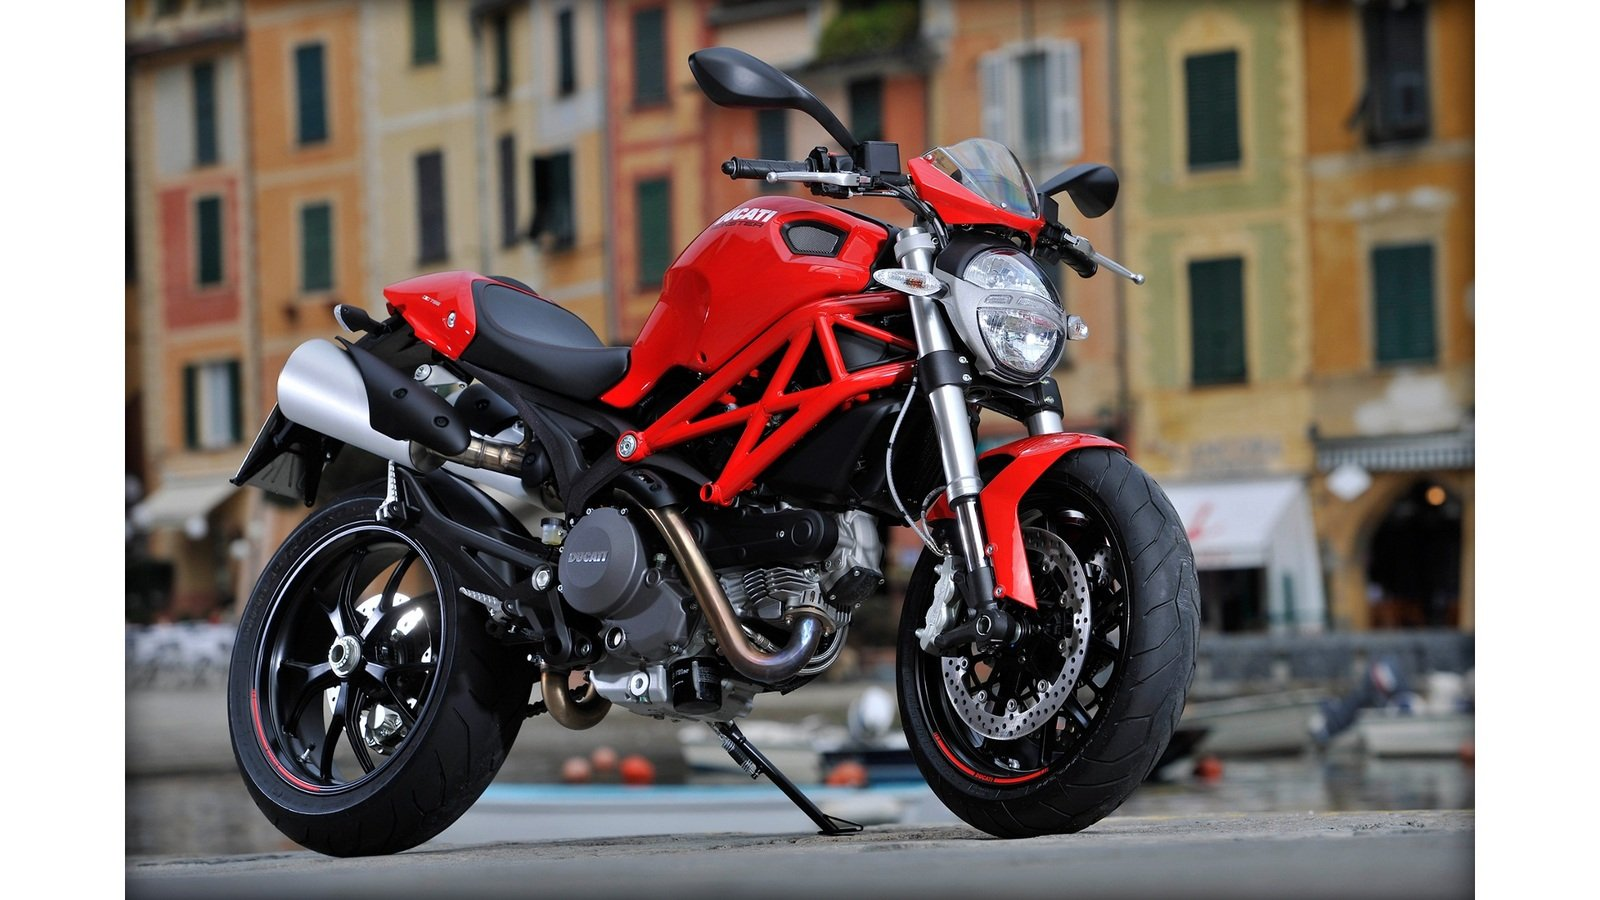 2013 ducati monster 796 20th anniversary picture 482309 motorcycle review top speed. Black Bedroom Furniture Sets. Home Design Ideas